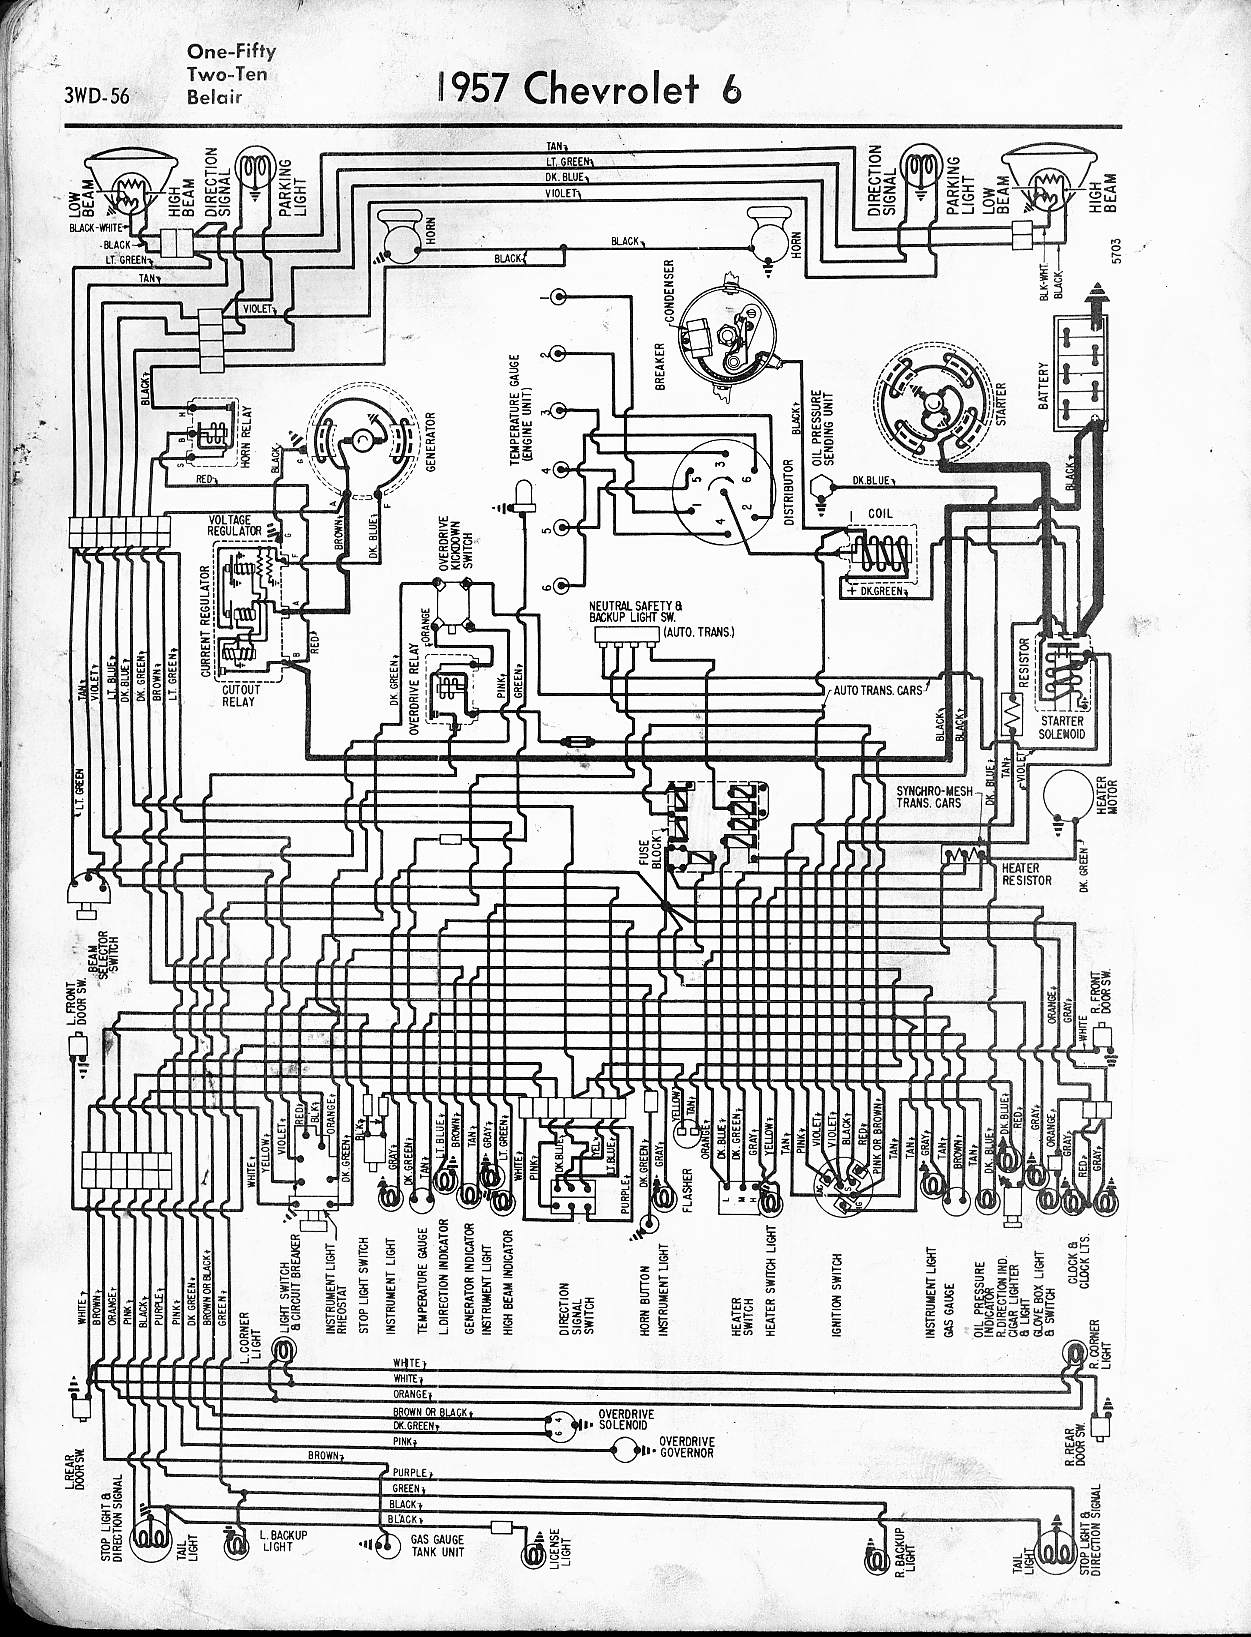 57 bel air wiring diagram skk dollheads uk \u20221957 chevy generator wiring wiring diagram rh 67 unsere umzuege de 57 bel air wiring diagram